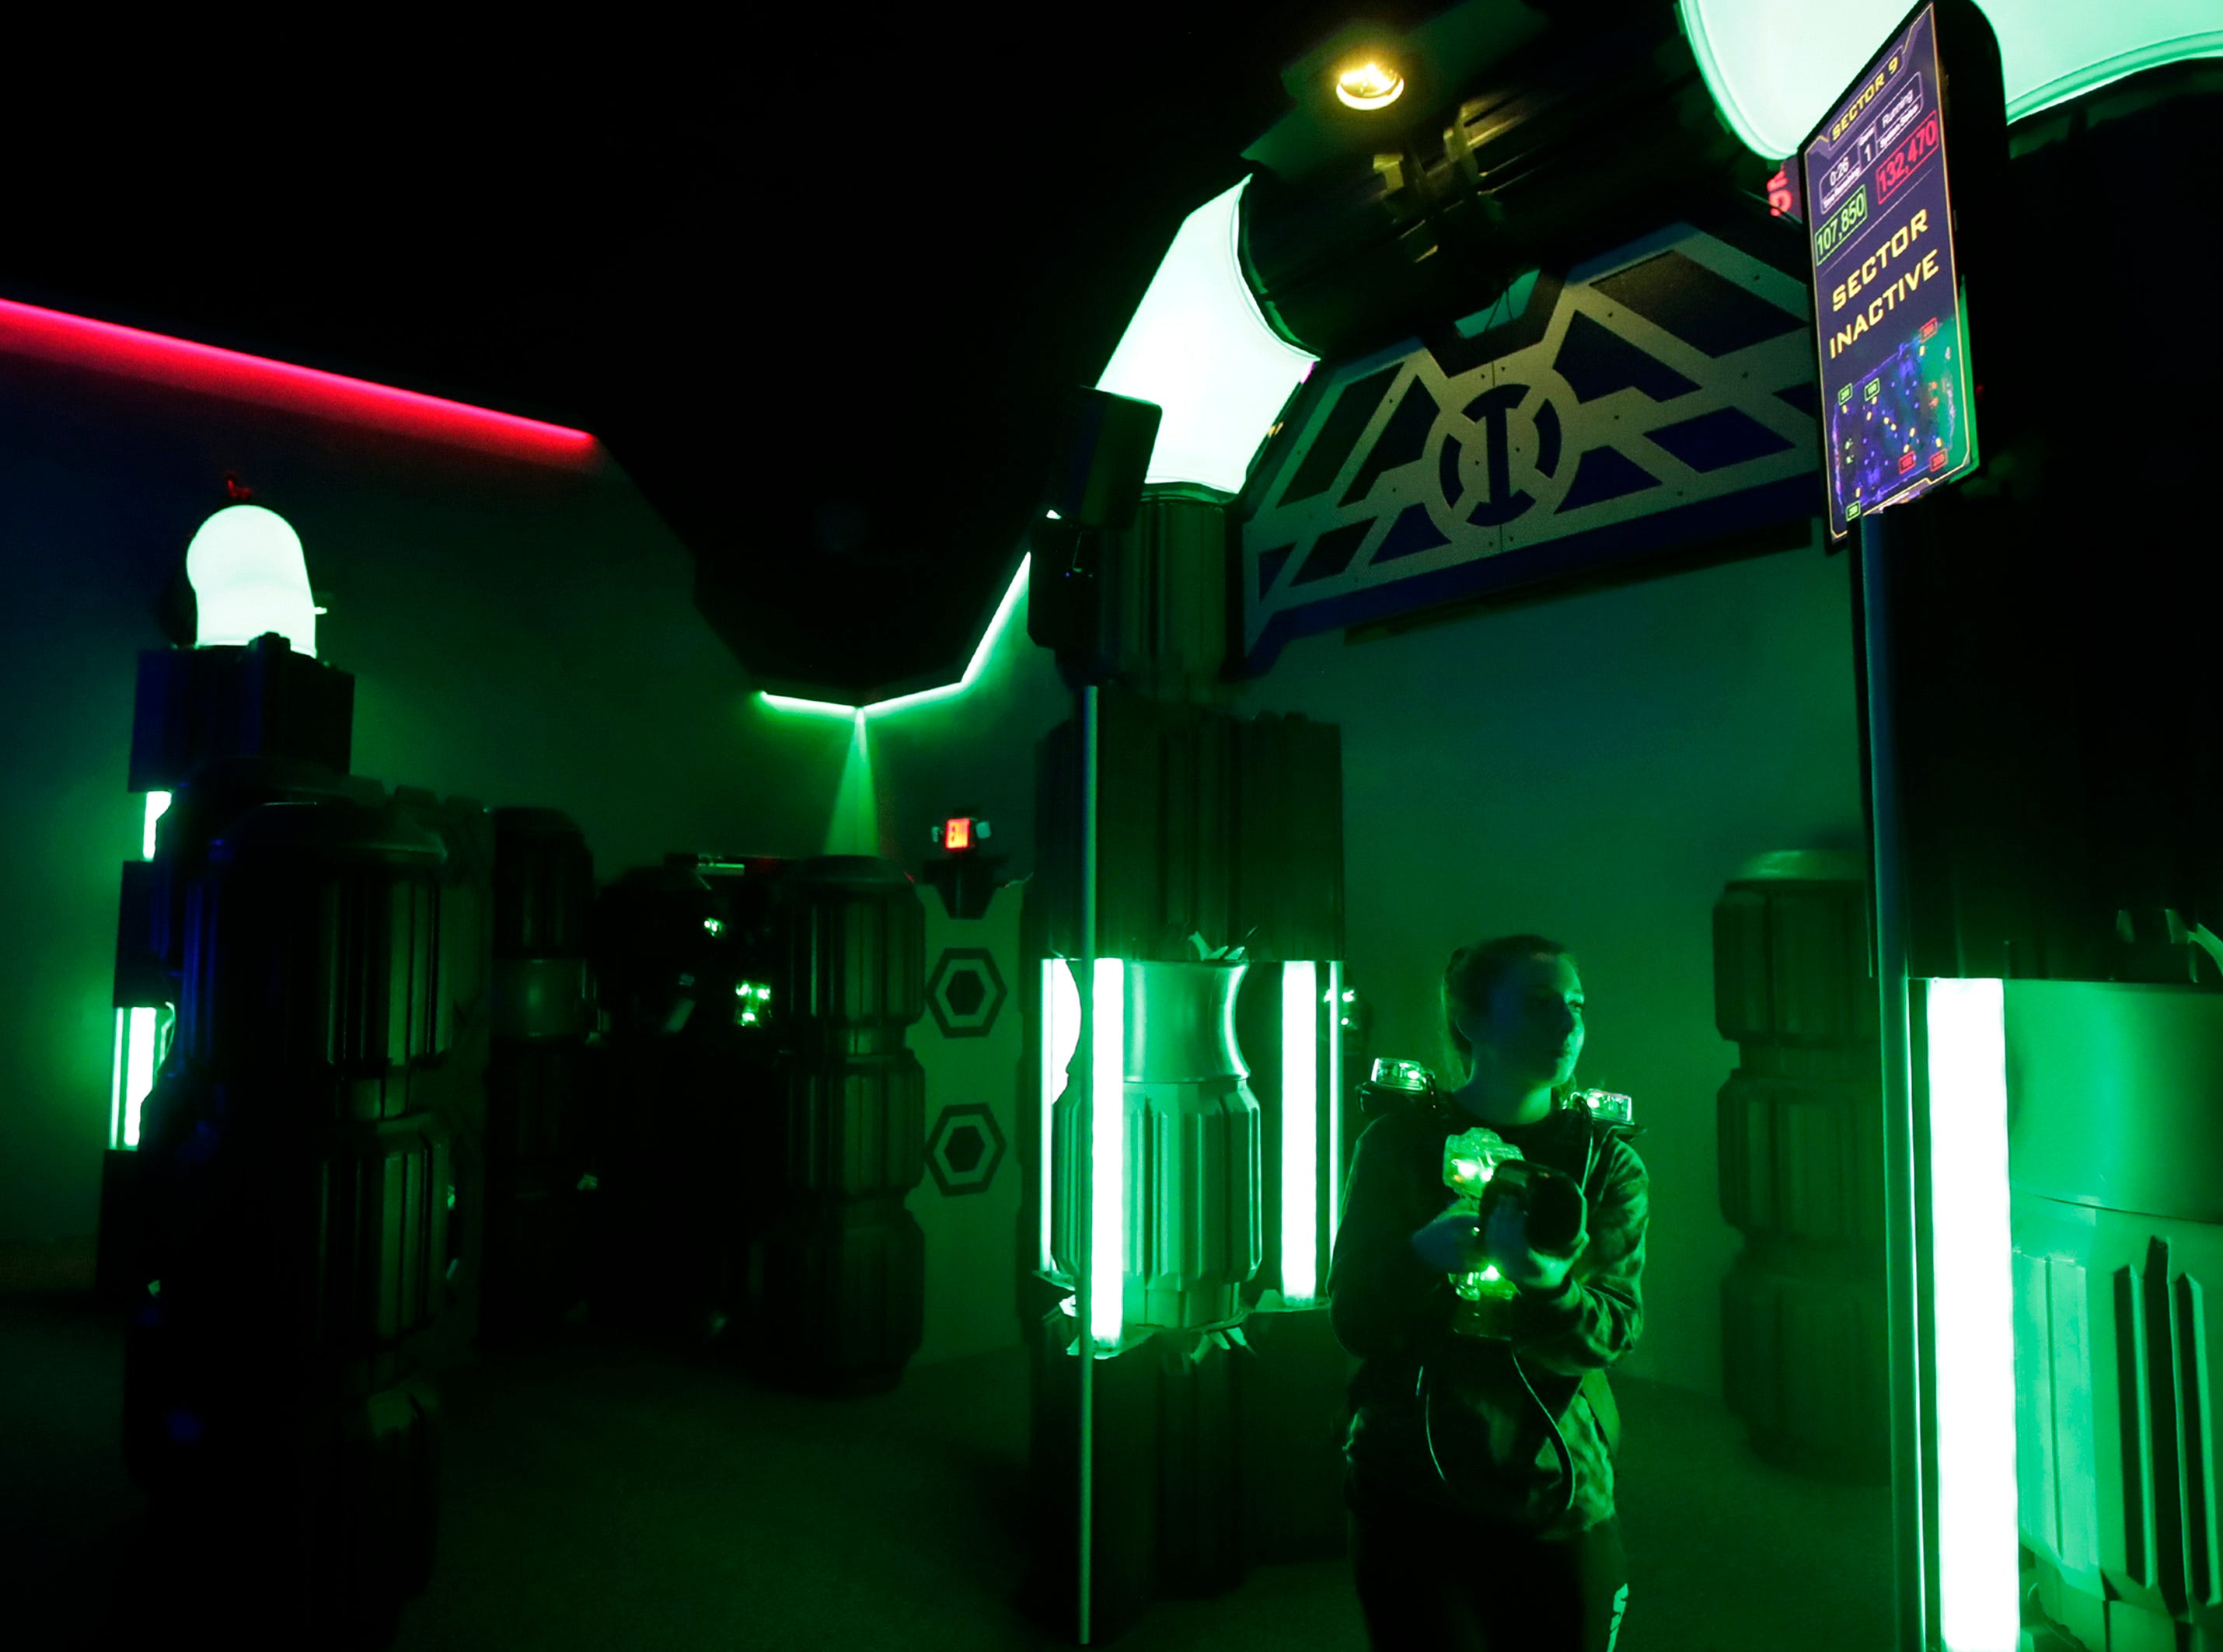 Jordann Thiel, a senior at Kimberly High School, plays a round of laser tag at Badger Sports Park during a Lifetime Sports and Fitness physical education class with Kimberly High School Tuesday, Jan. 8, 2019, Appleton, Wis. Badger Sports Park's laser tag facilities were remodeled in late November. 